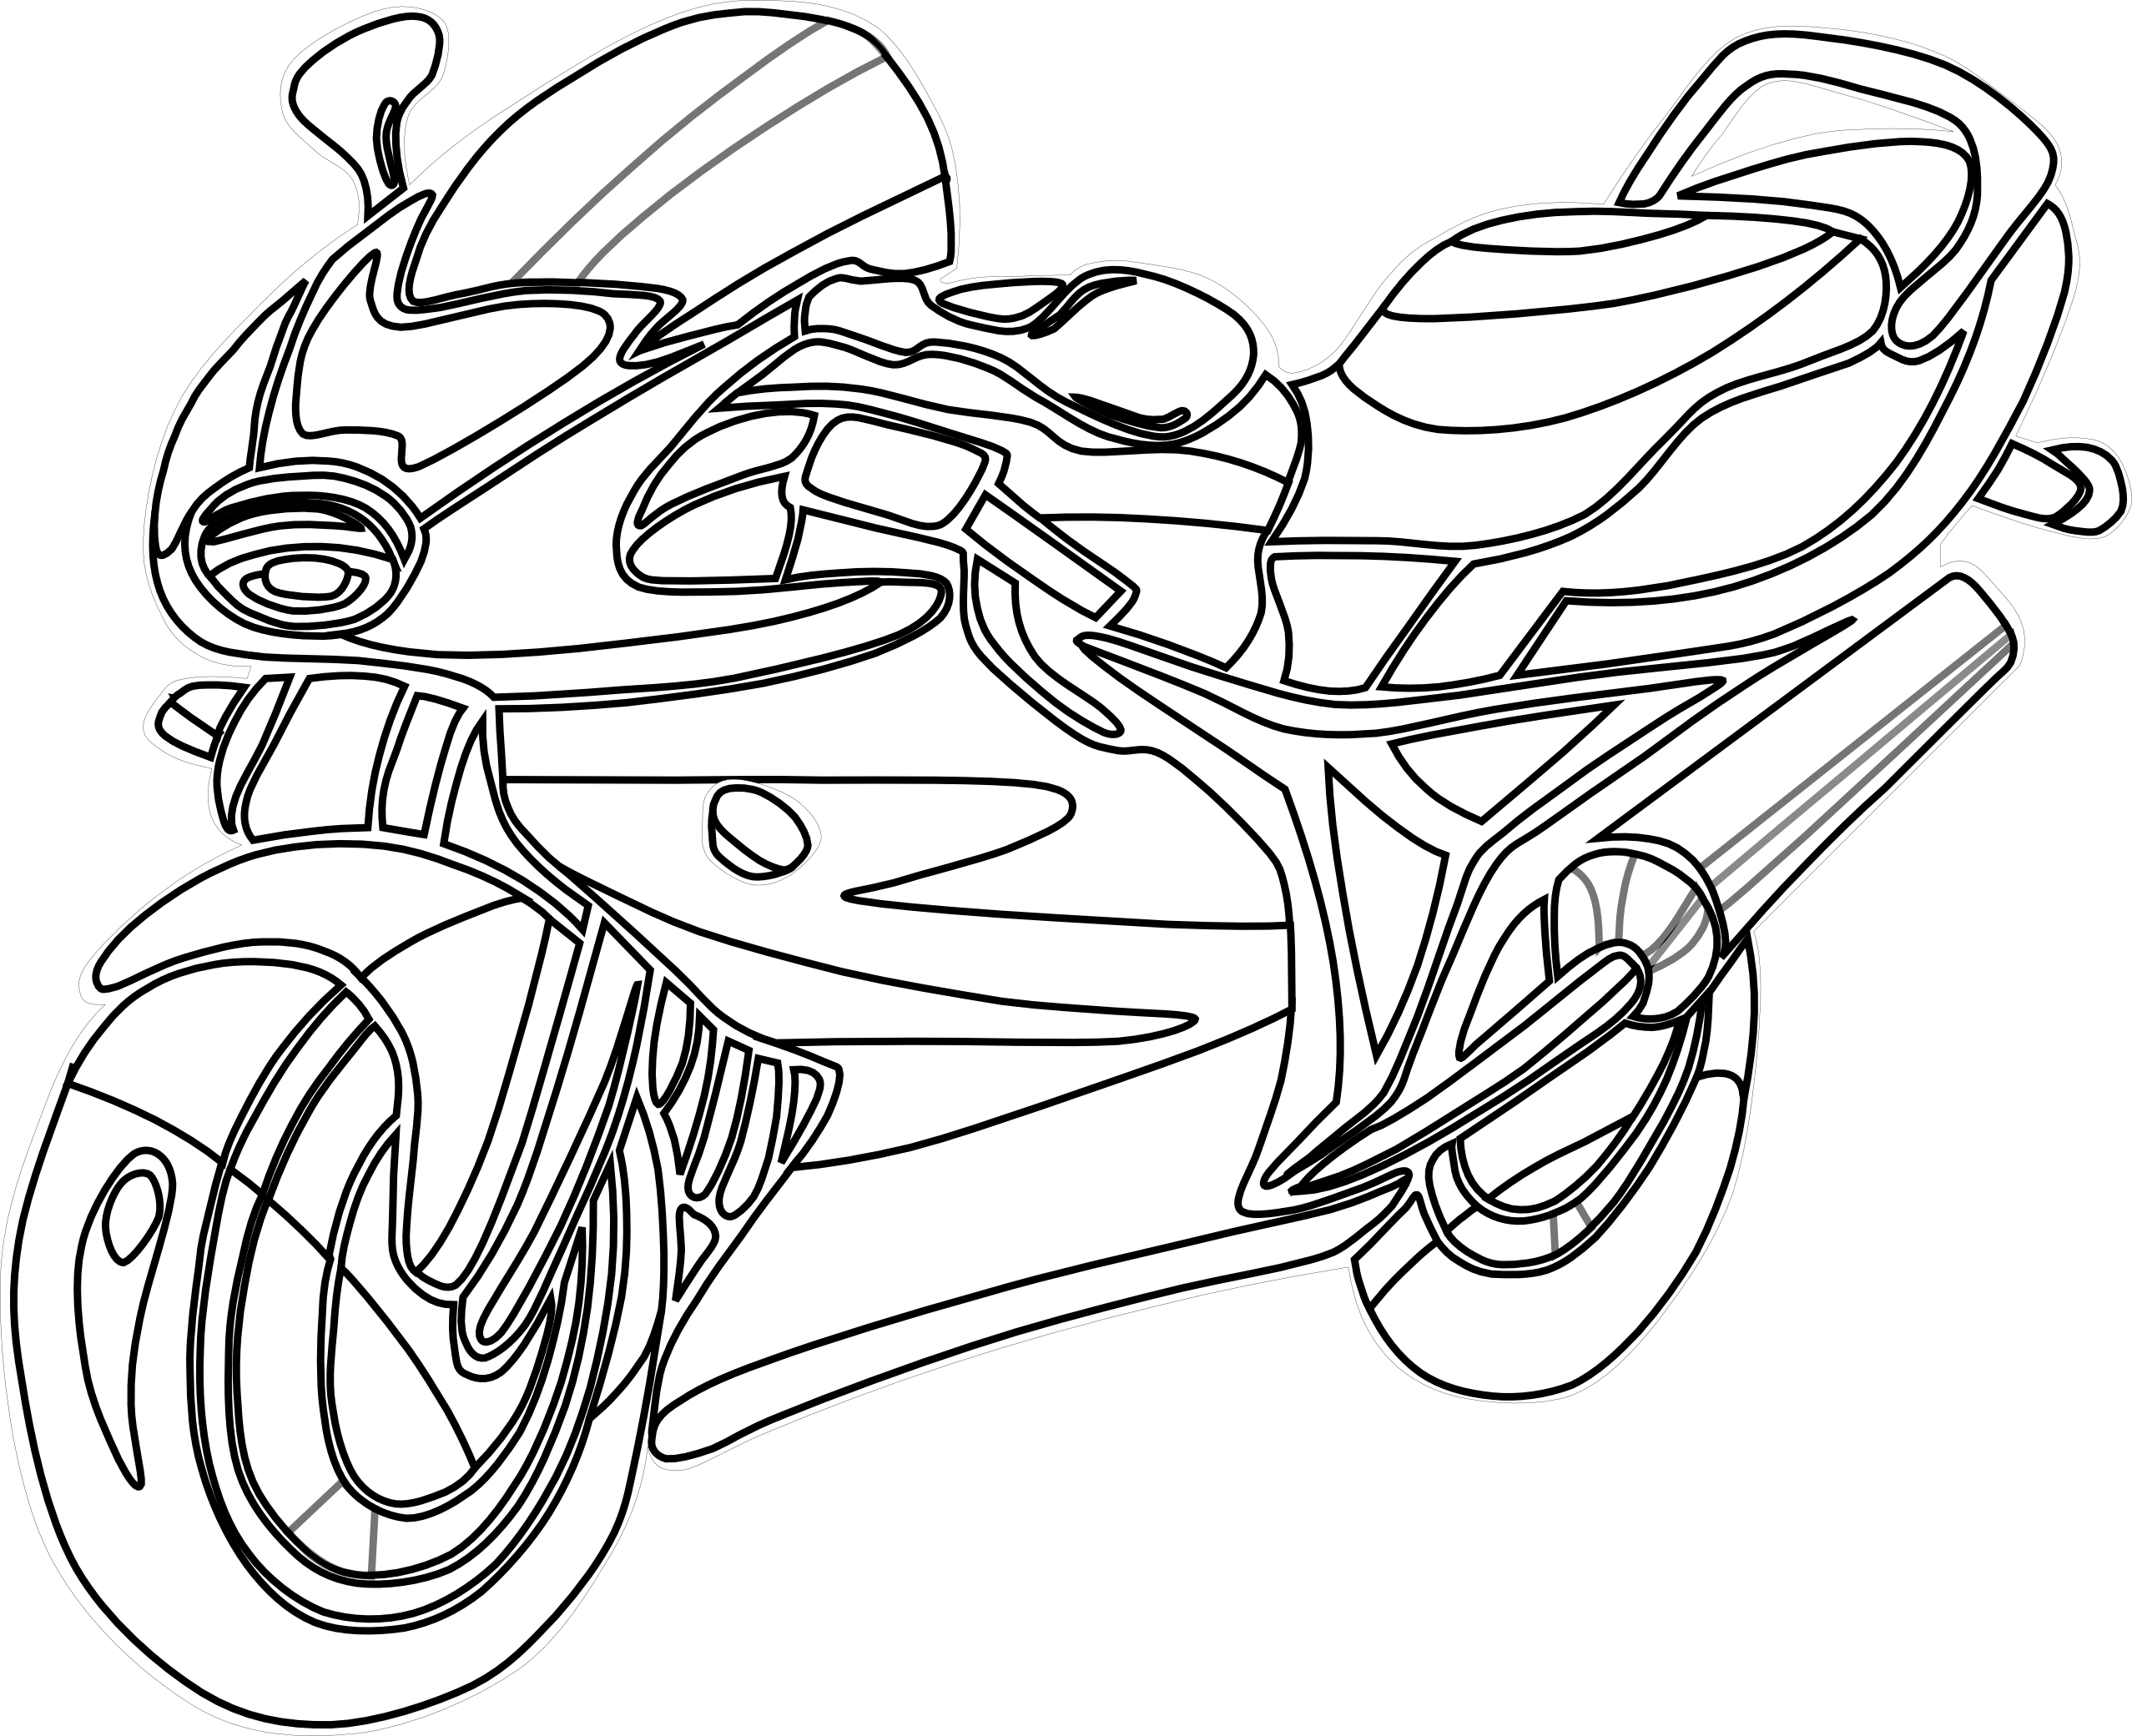 Line Art Motorcycle : Motorcycle clipart black white line art coloring